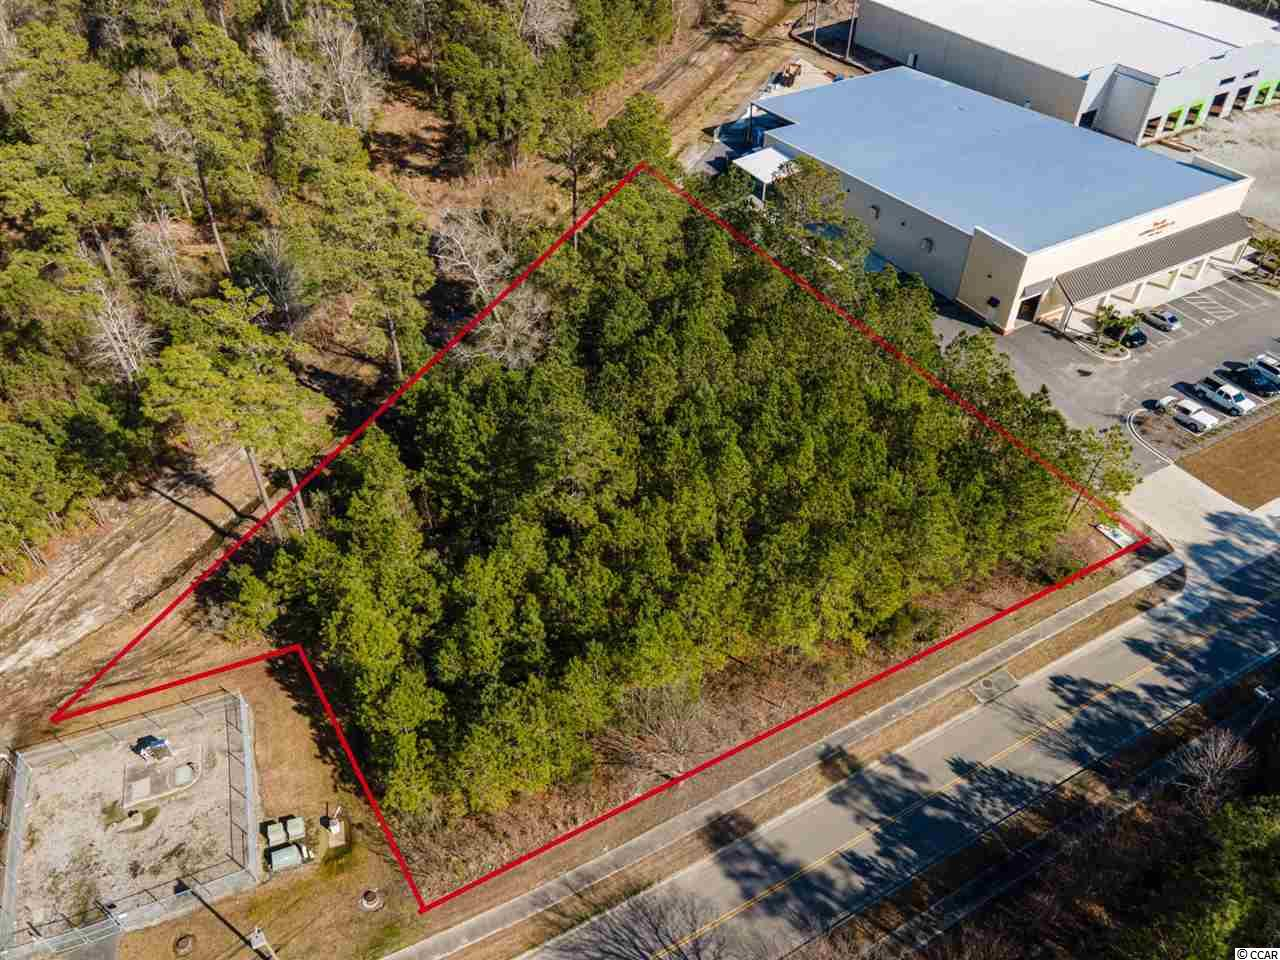 Wonderful opportunity to own almost a FULL ACRE of land in the heart of Myrtle Beach. This commercial site is has paved roads, water and sewer availability, no HOA and no timeframe to build! Bring your own builder to realize your vision of the perfect office complex, manufacturing facility or trade shop! Located near all major highways and the airport! Financing options available. Call today!